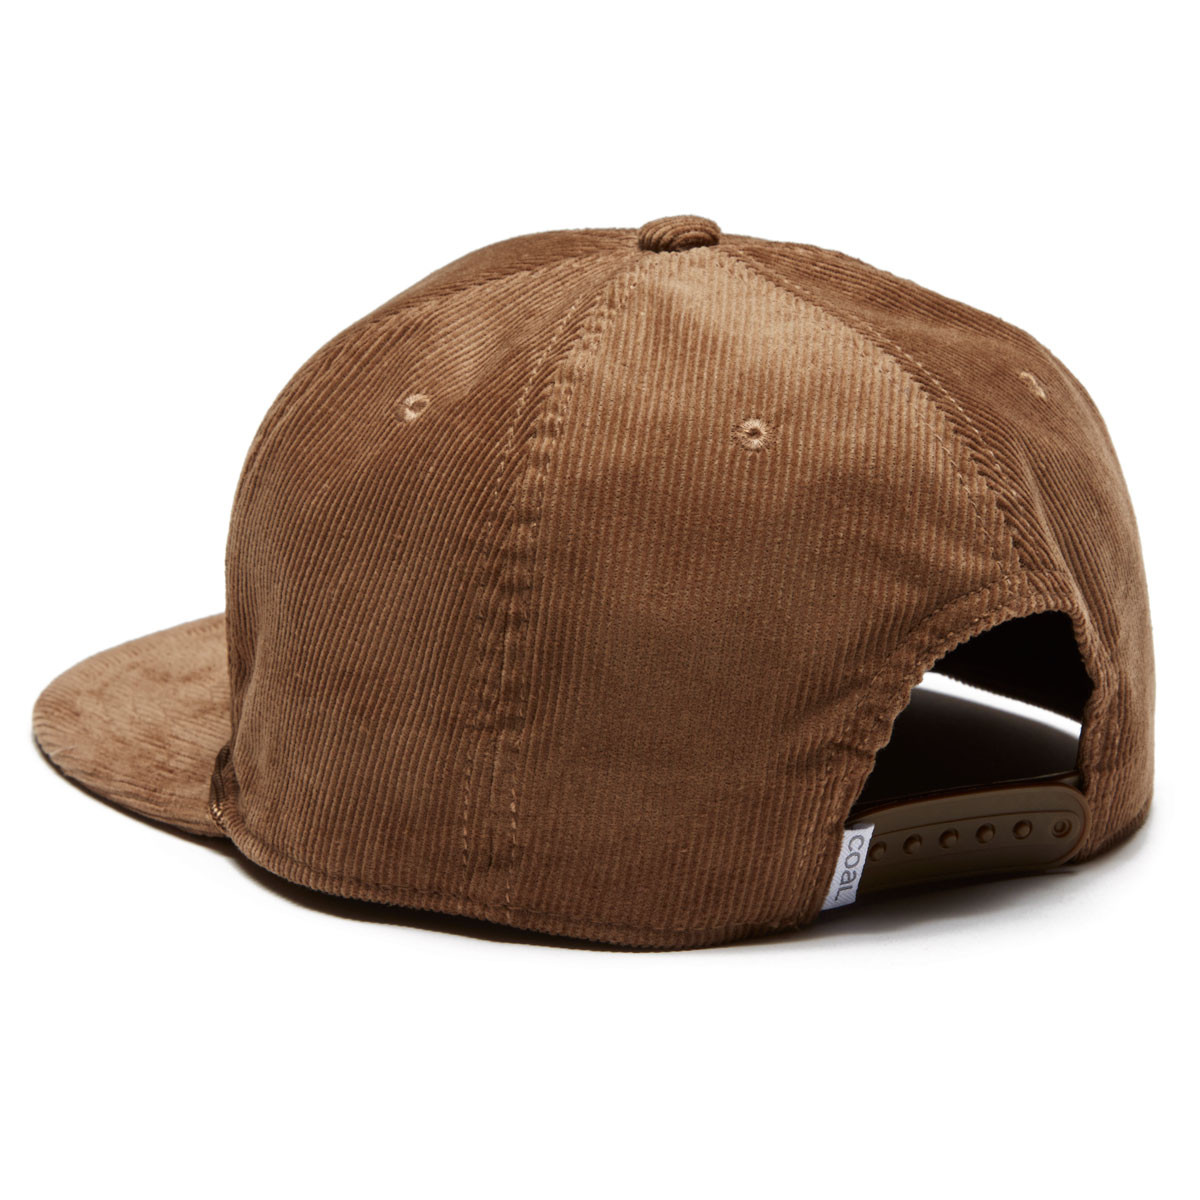 Coal The Wilderness Hat - Light Brown (Duck) e326f5dde94d